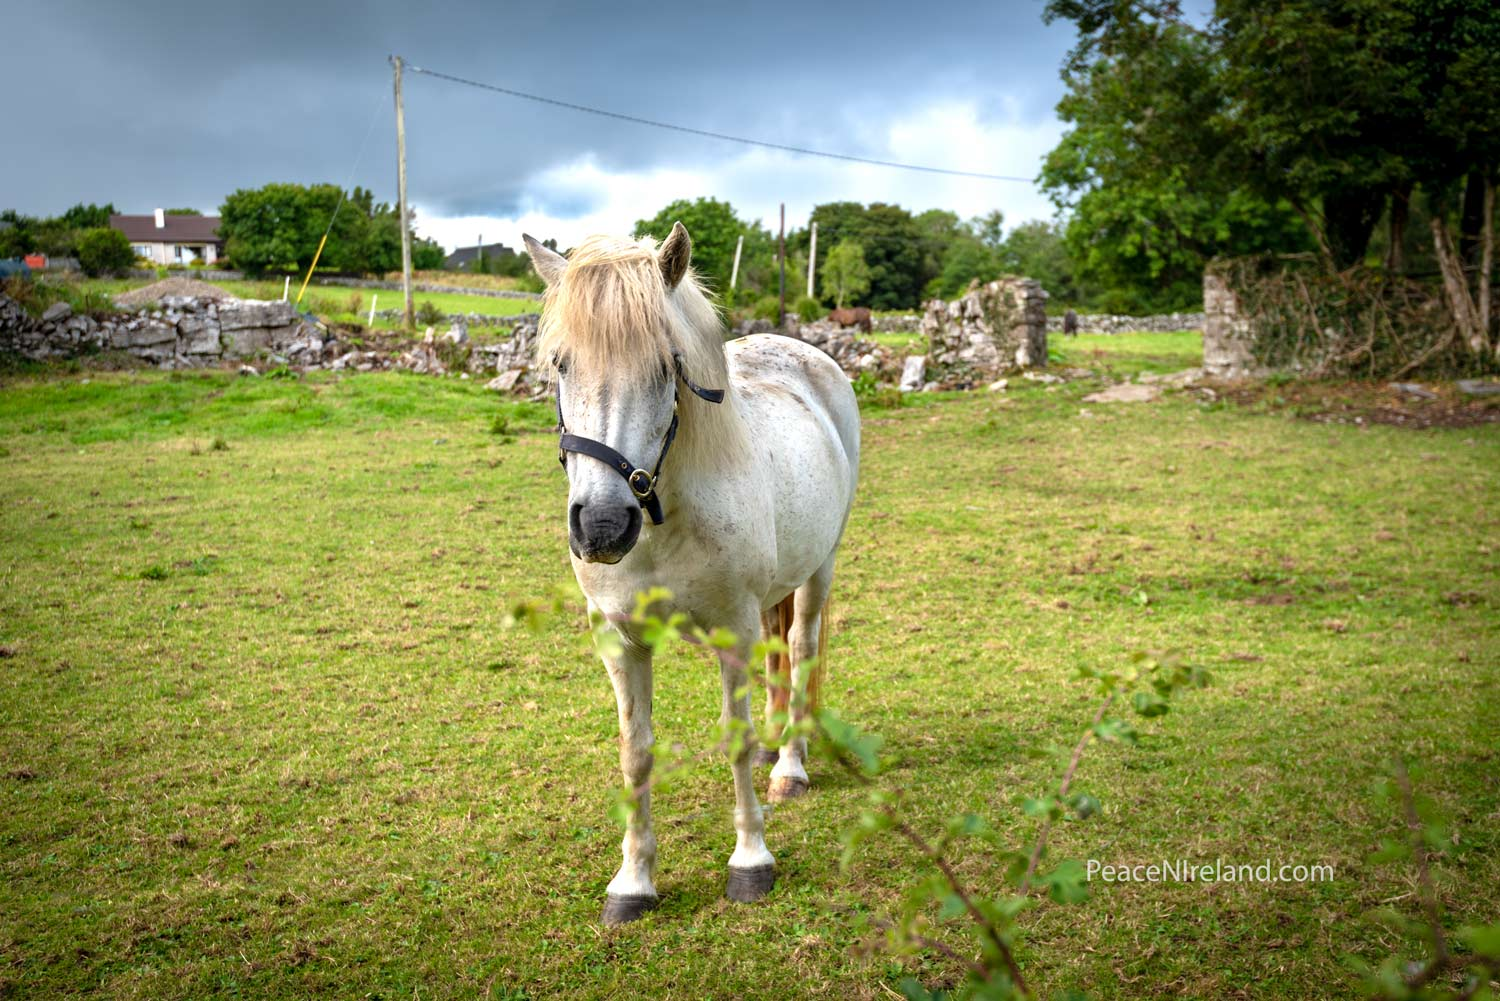 The 'greetings' pony - welcoming visitors along the laneway to Aughnanure Castle